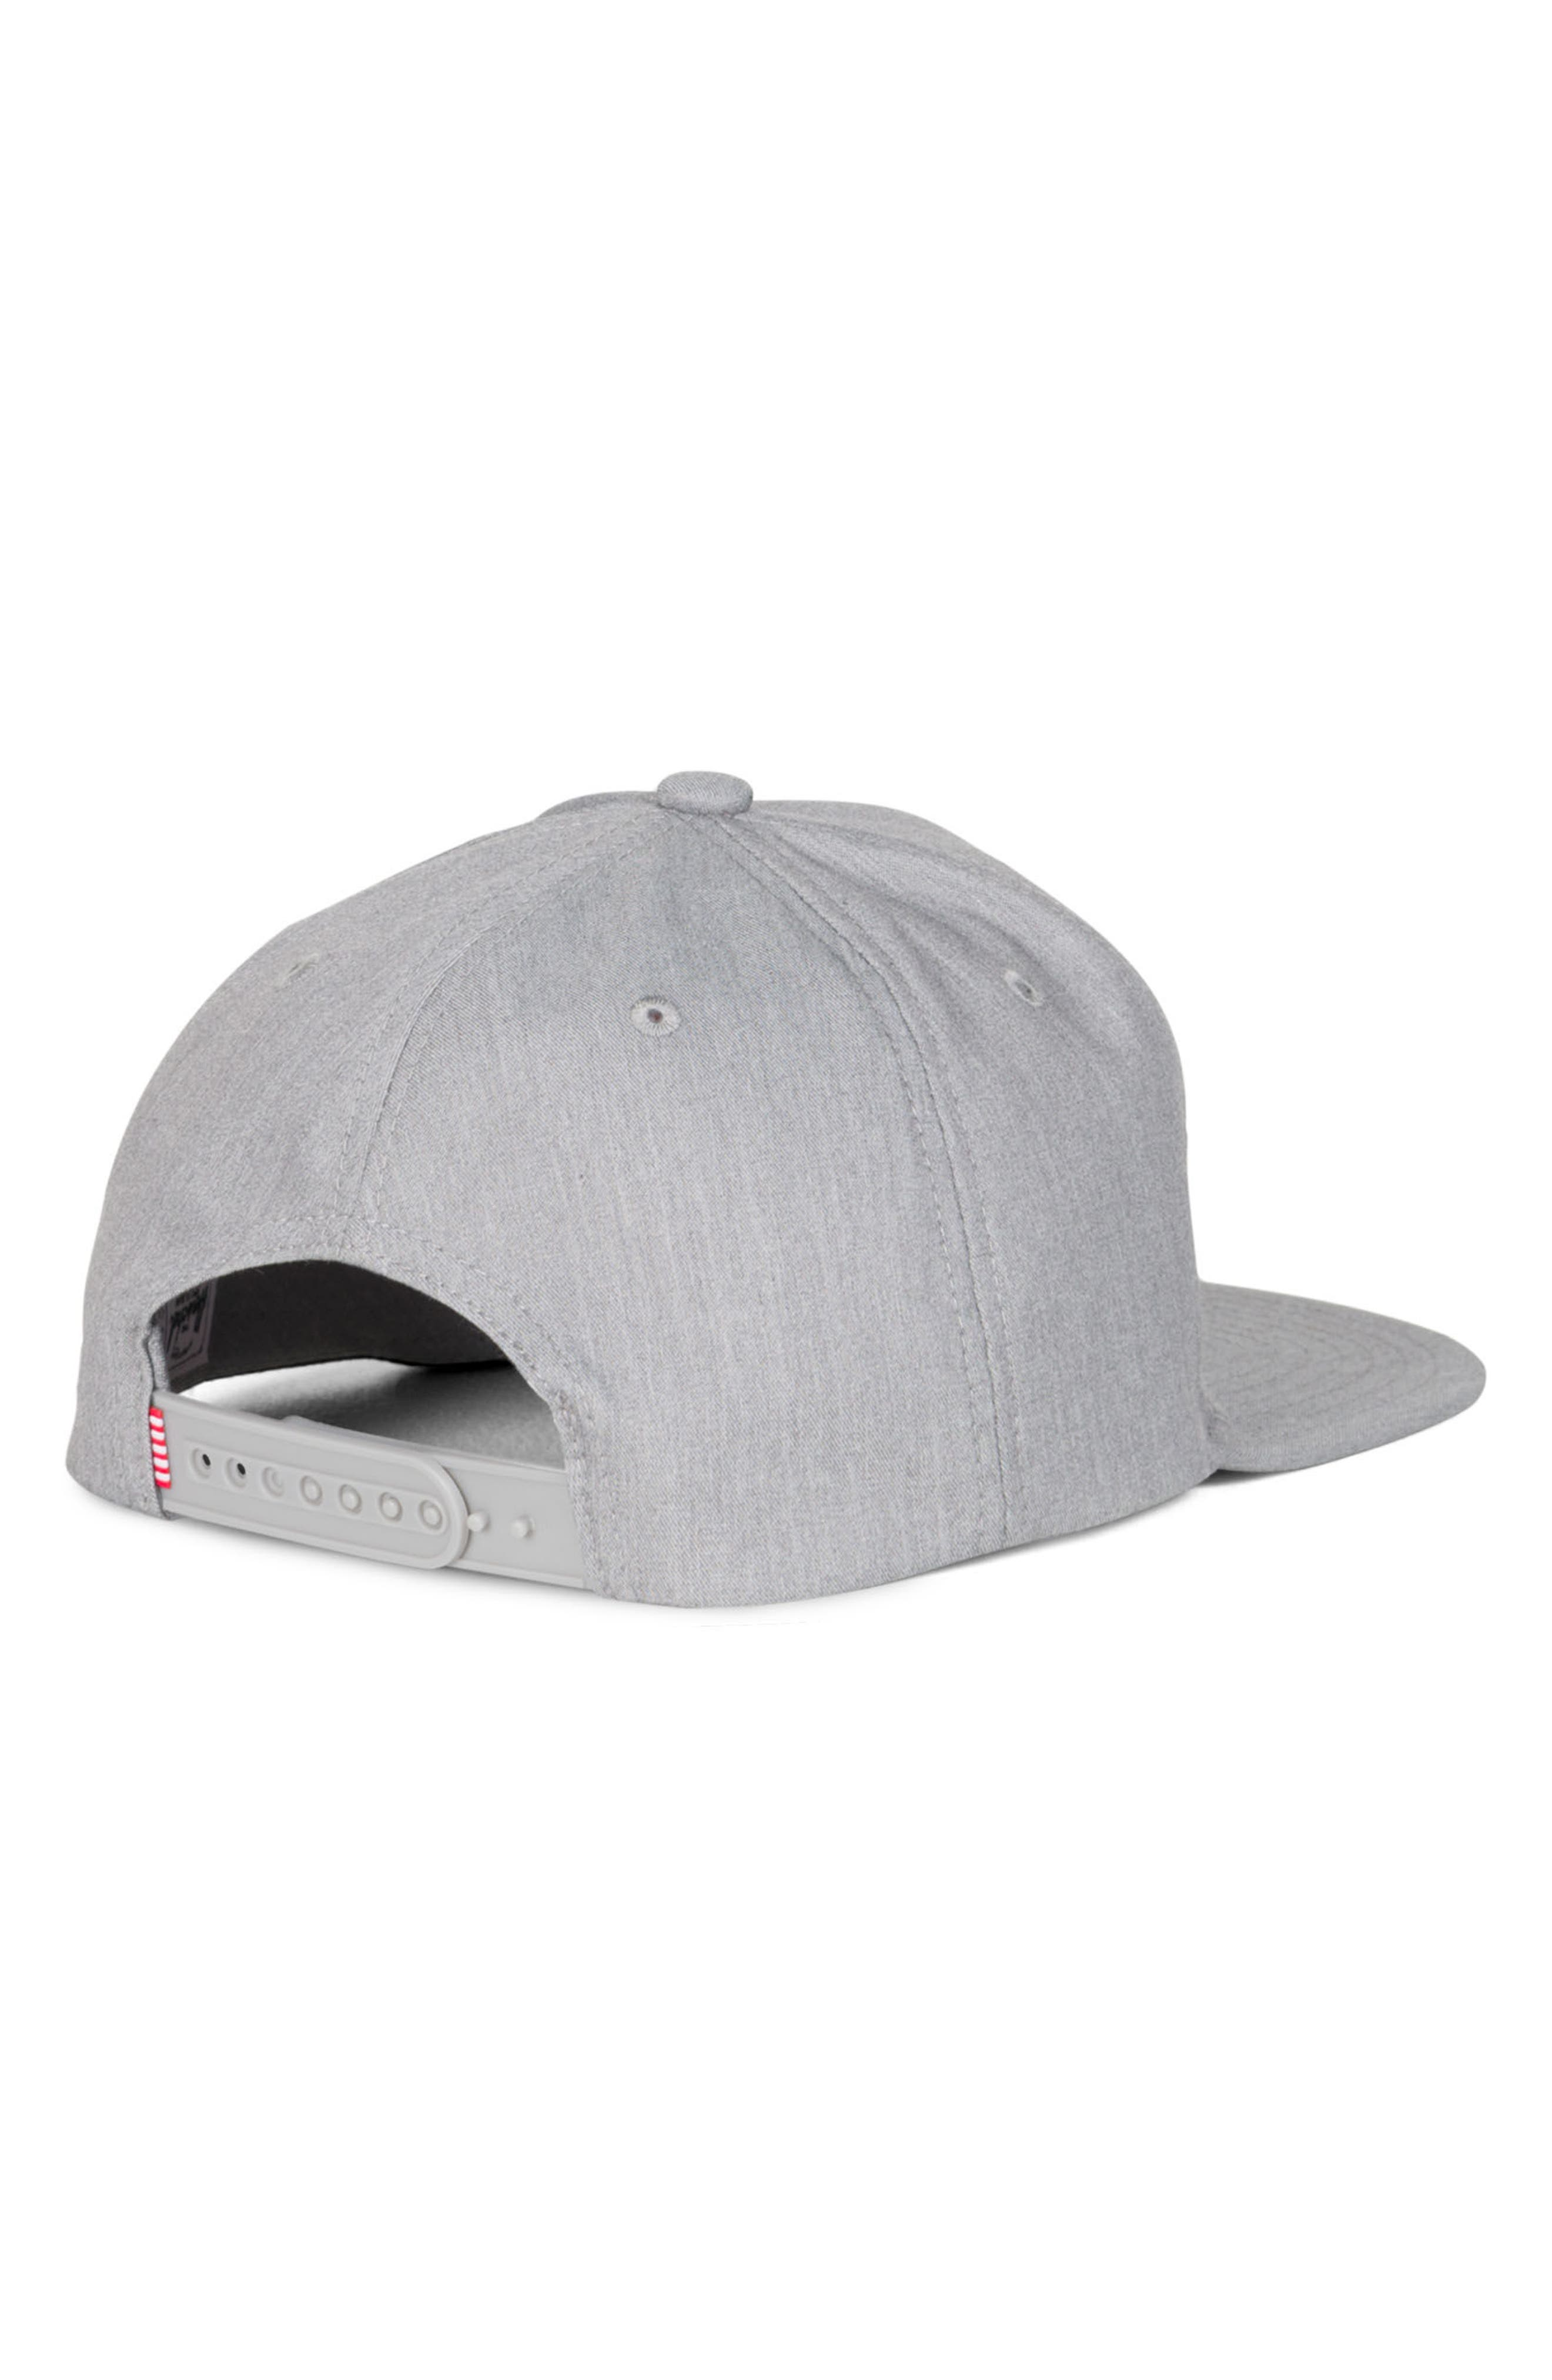 Alternate Image 2  - Herschel Supply Co. Whaler Snapback Baseball Cap